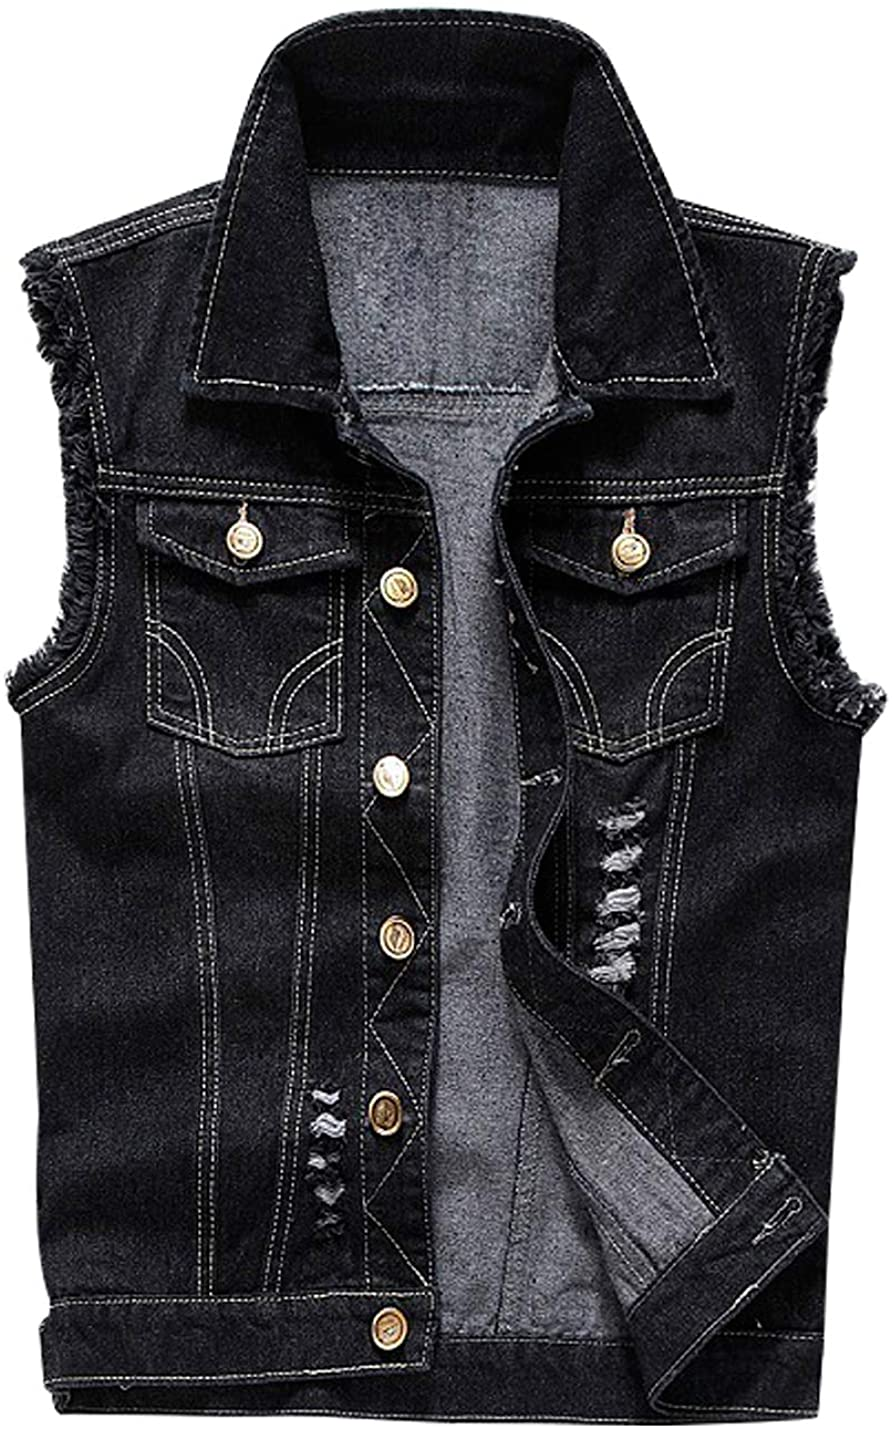 HUPOO Men's Ripped Denim Vests Buttons Down Sleeveless Jean Jackets